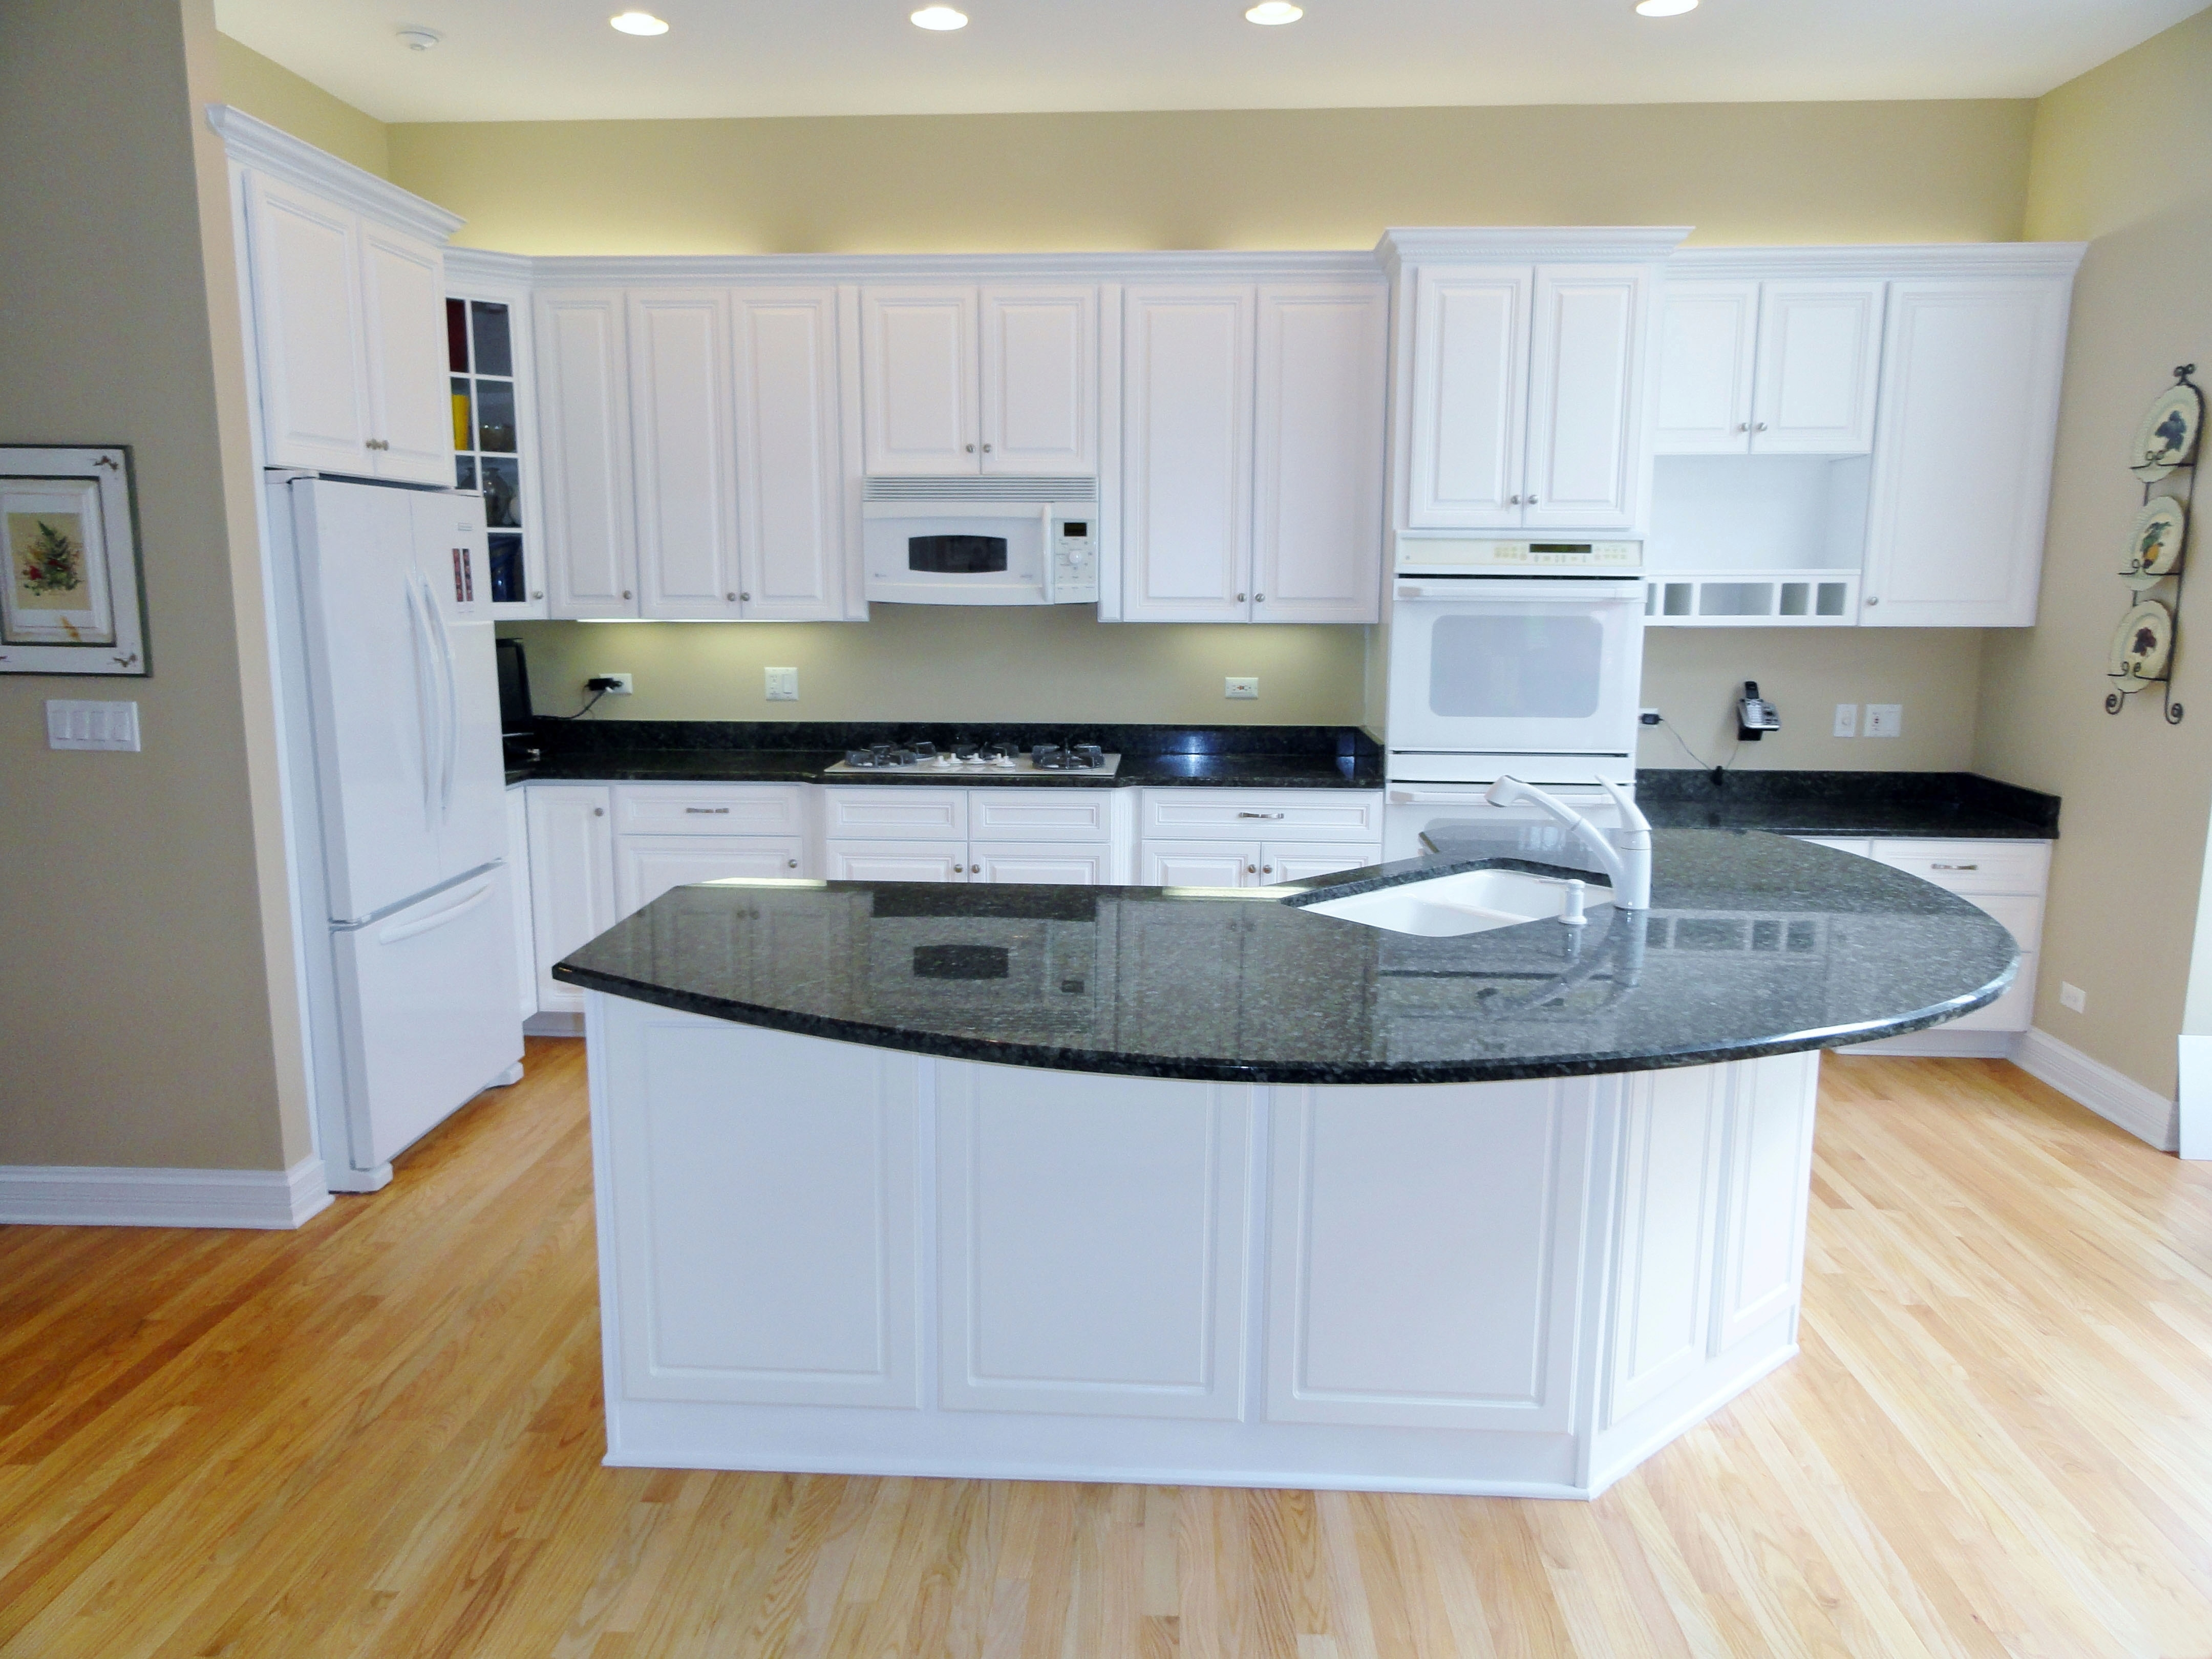 Refacing White Laminate Kitchen Cabinets